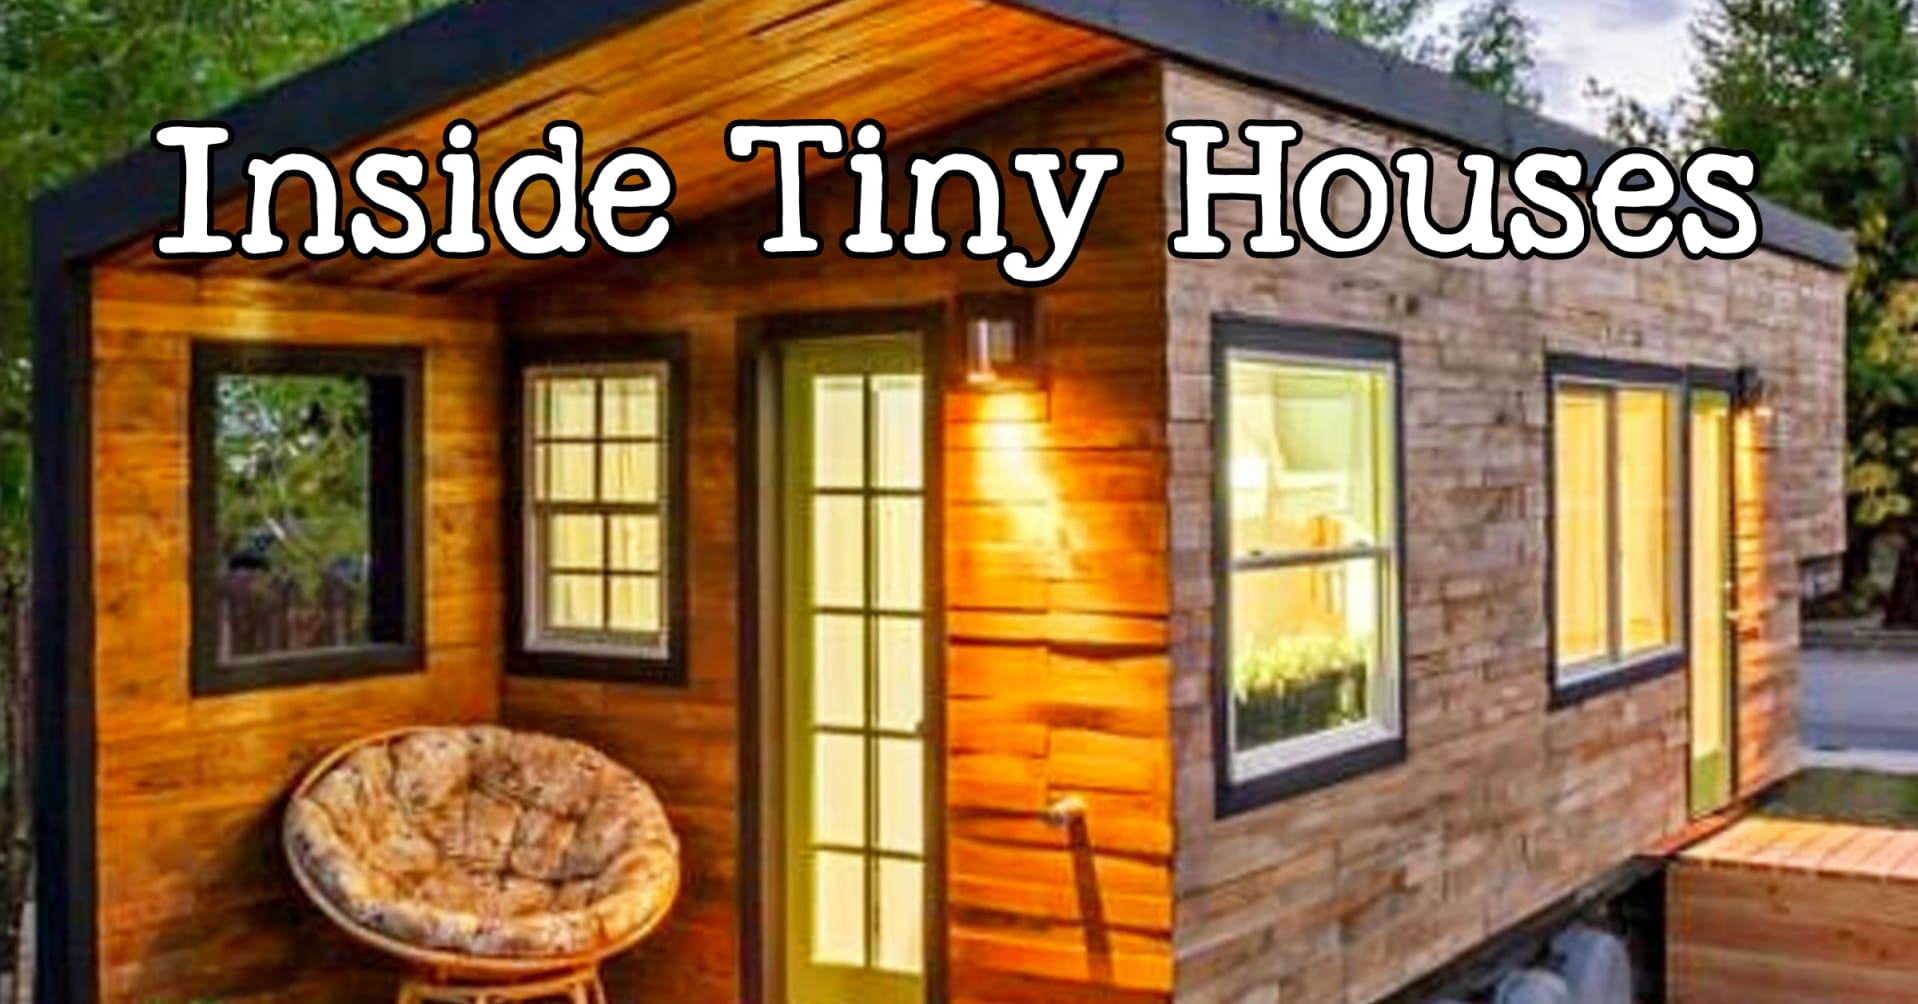 Tiny houses! Love HGTV Tiny Homes? Take a look inside tiny houses wth these tiny house interior photos and images (interior AND exterior) These tiny house designs and floor plans are perfect tiny house plans under 1000 sq ft - they're like a tiny apartment on wheels for tiny home communities!